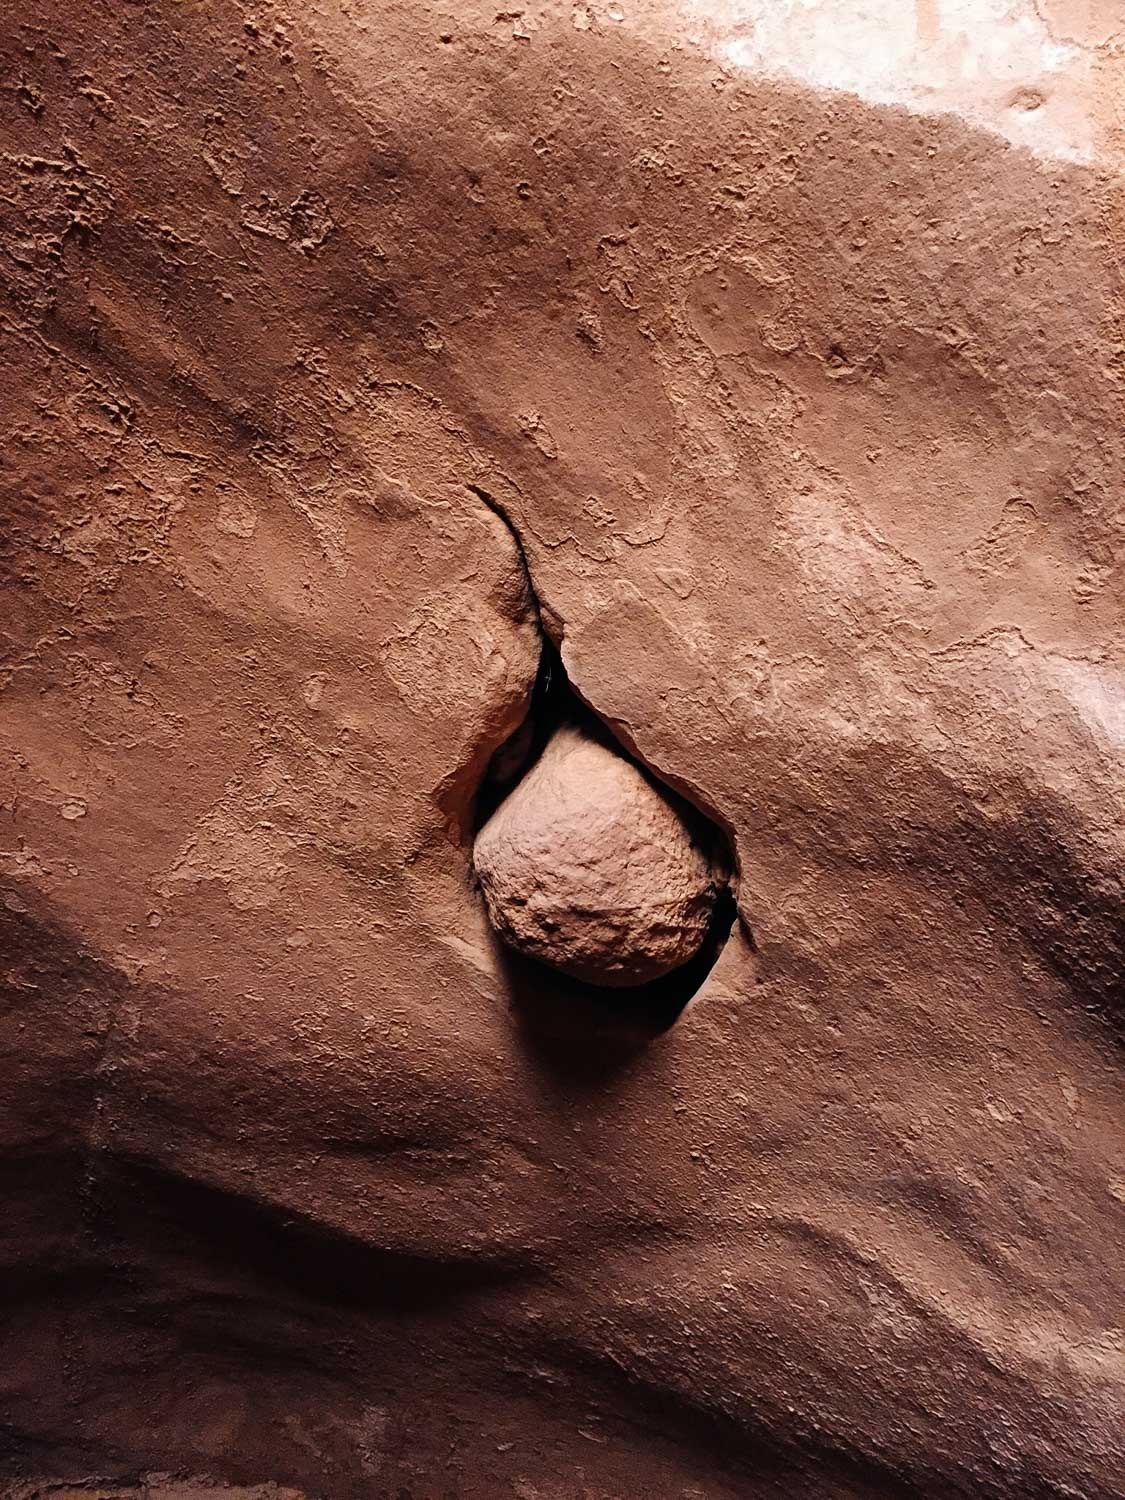 Rock stuck in a wall inside Lower Antelope Canyon.